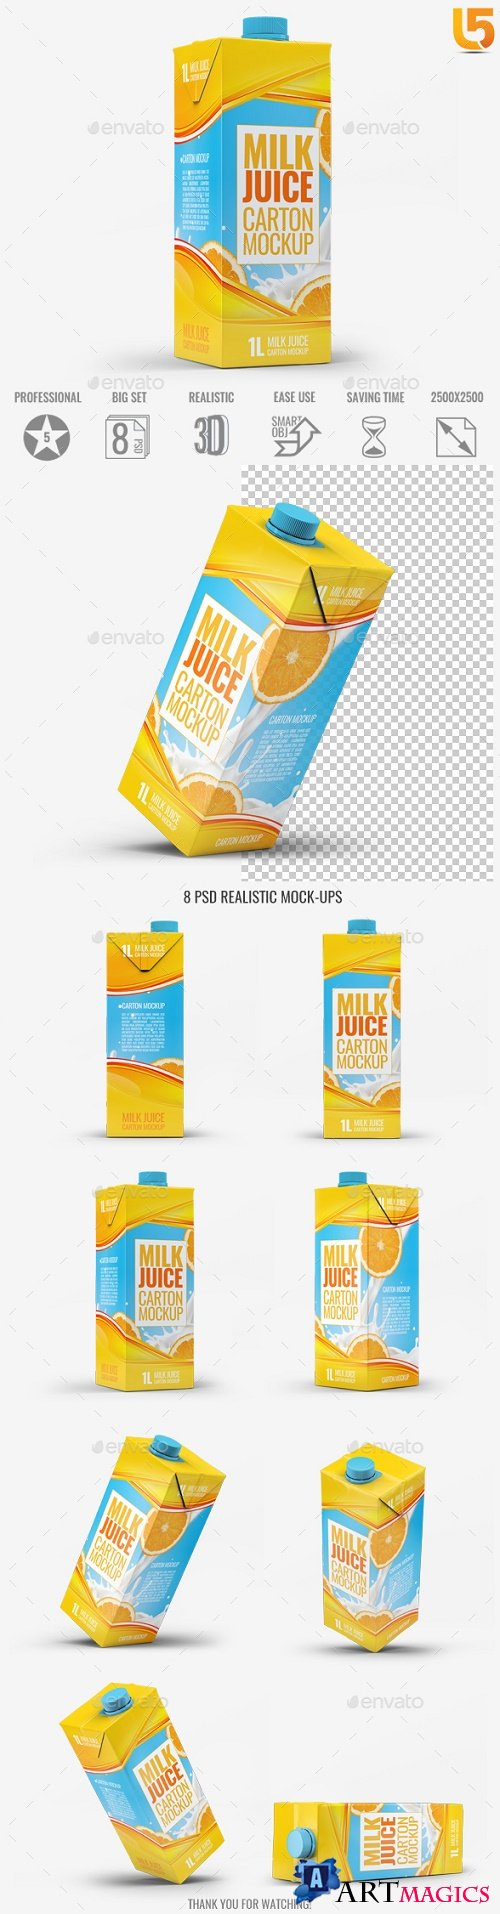 Milk or Juice Carton Mock-Up v1 - 21790758